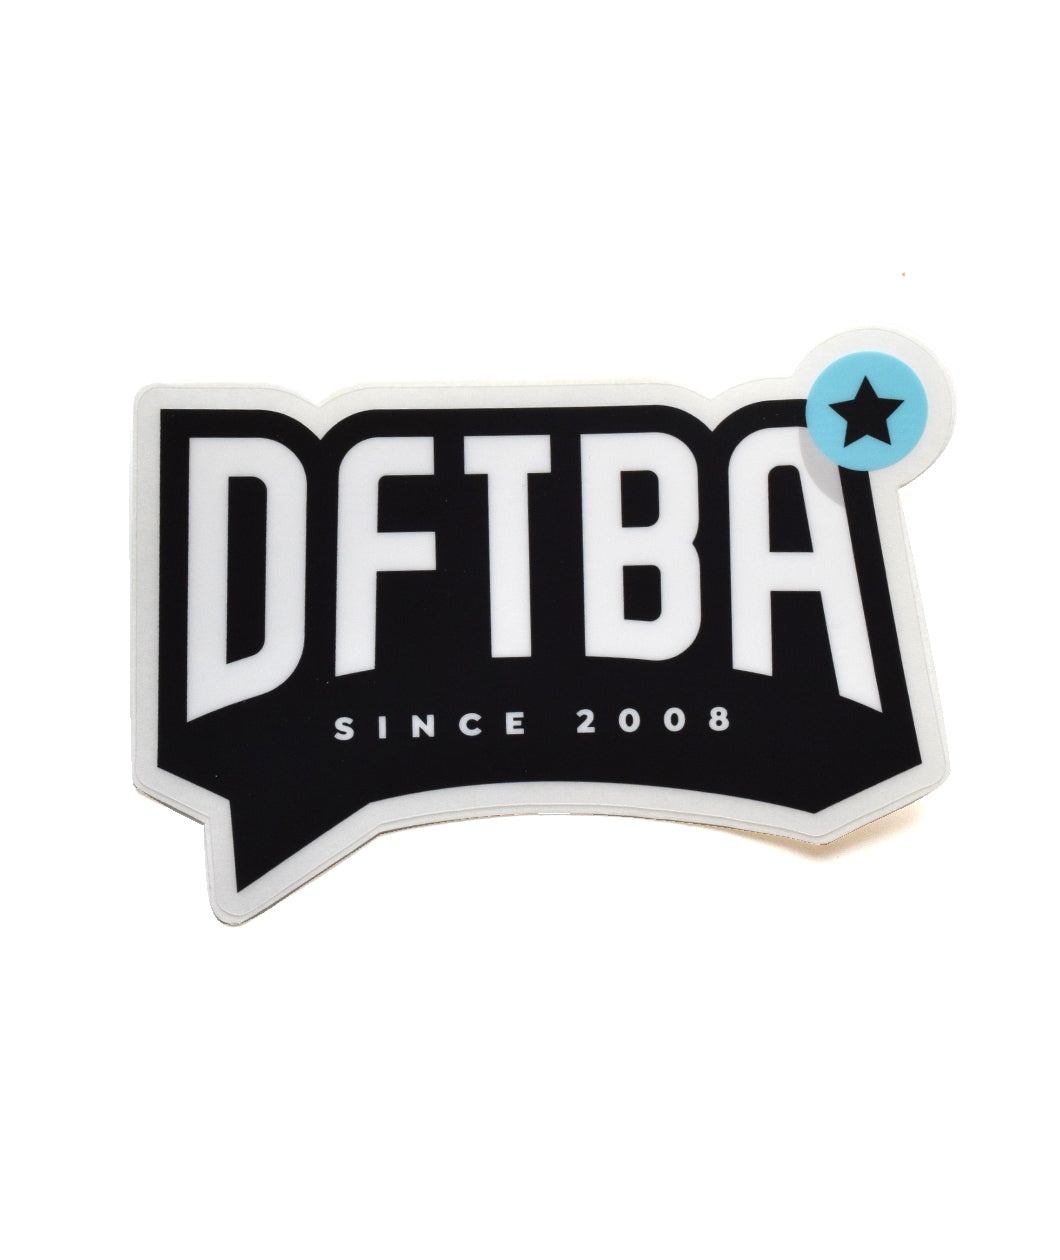 DFTBA Logo Decal